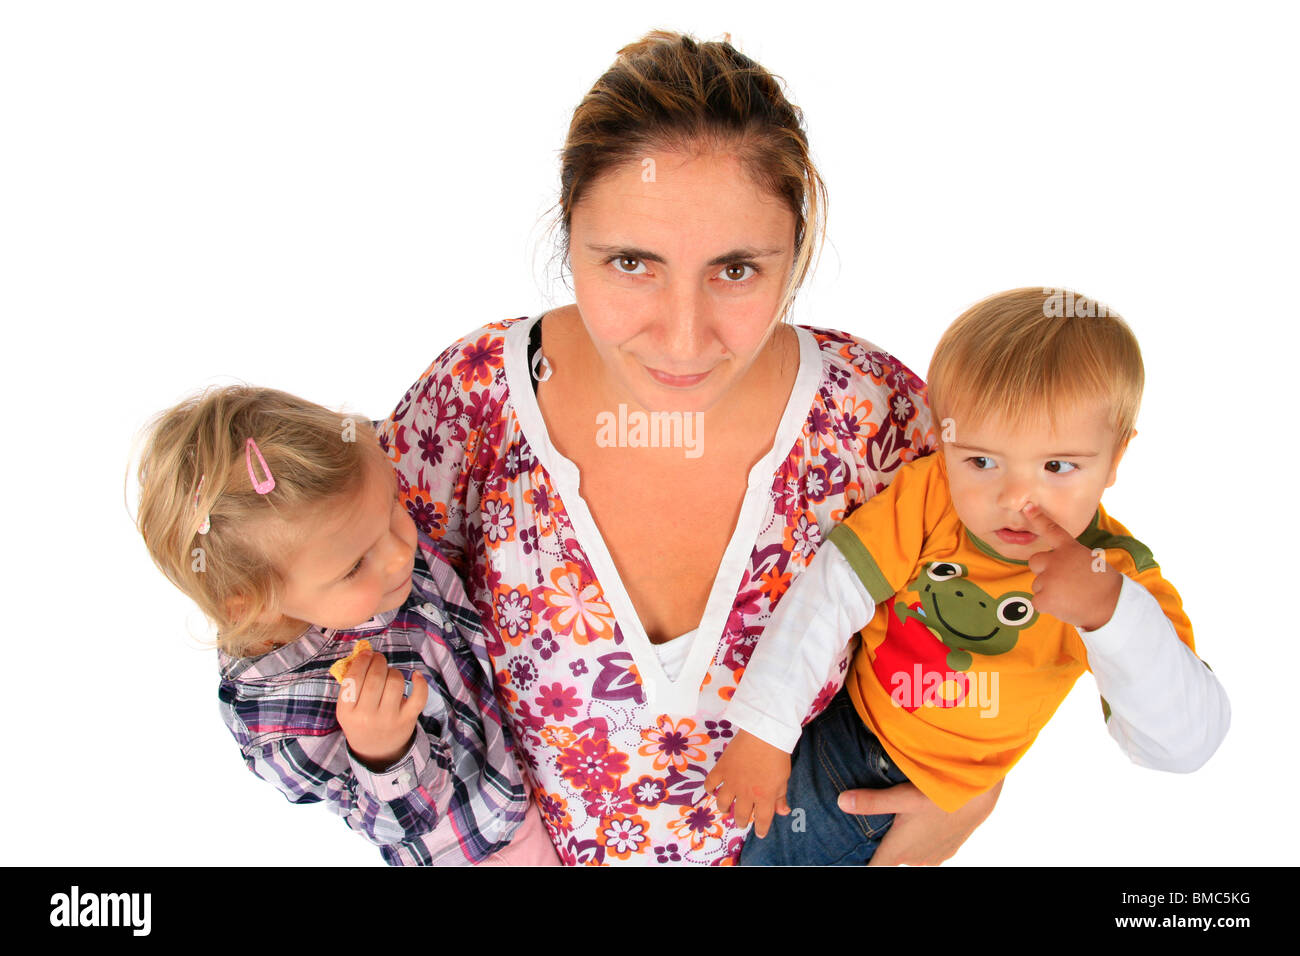 nerved mother with her children on her arms, girl eating a biscuit, boy picking his nose - Stock Image